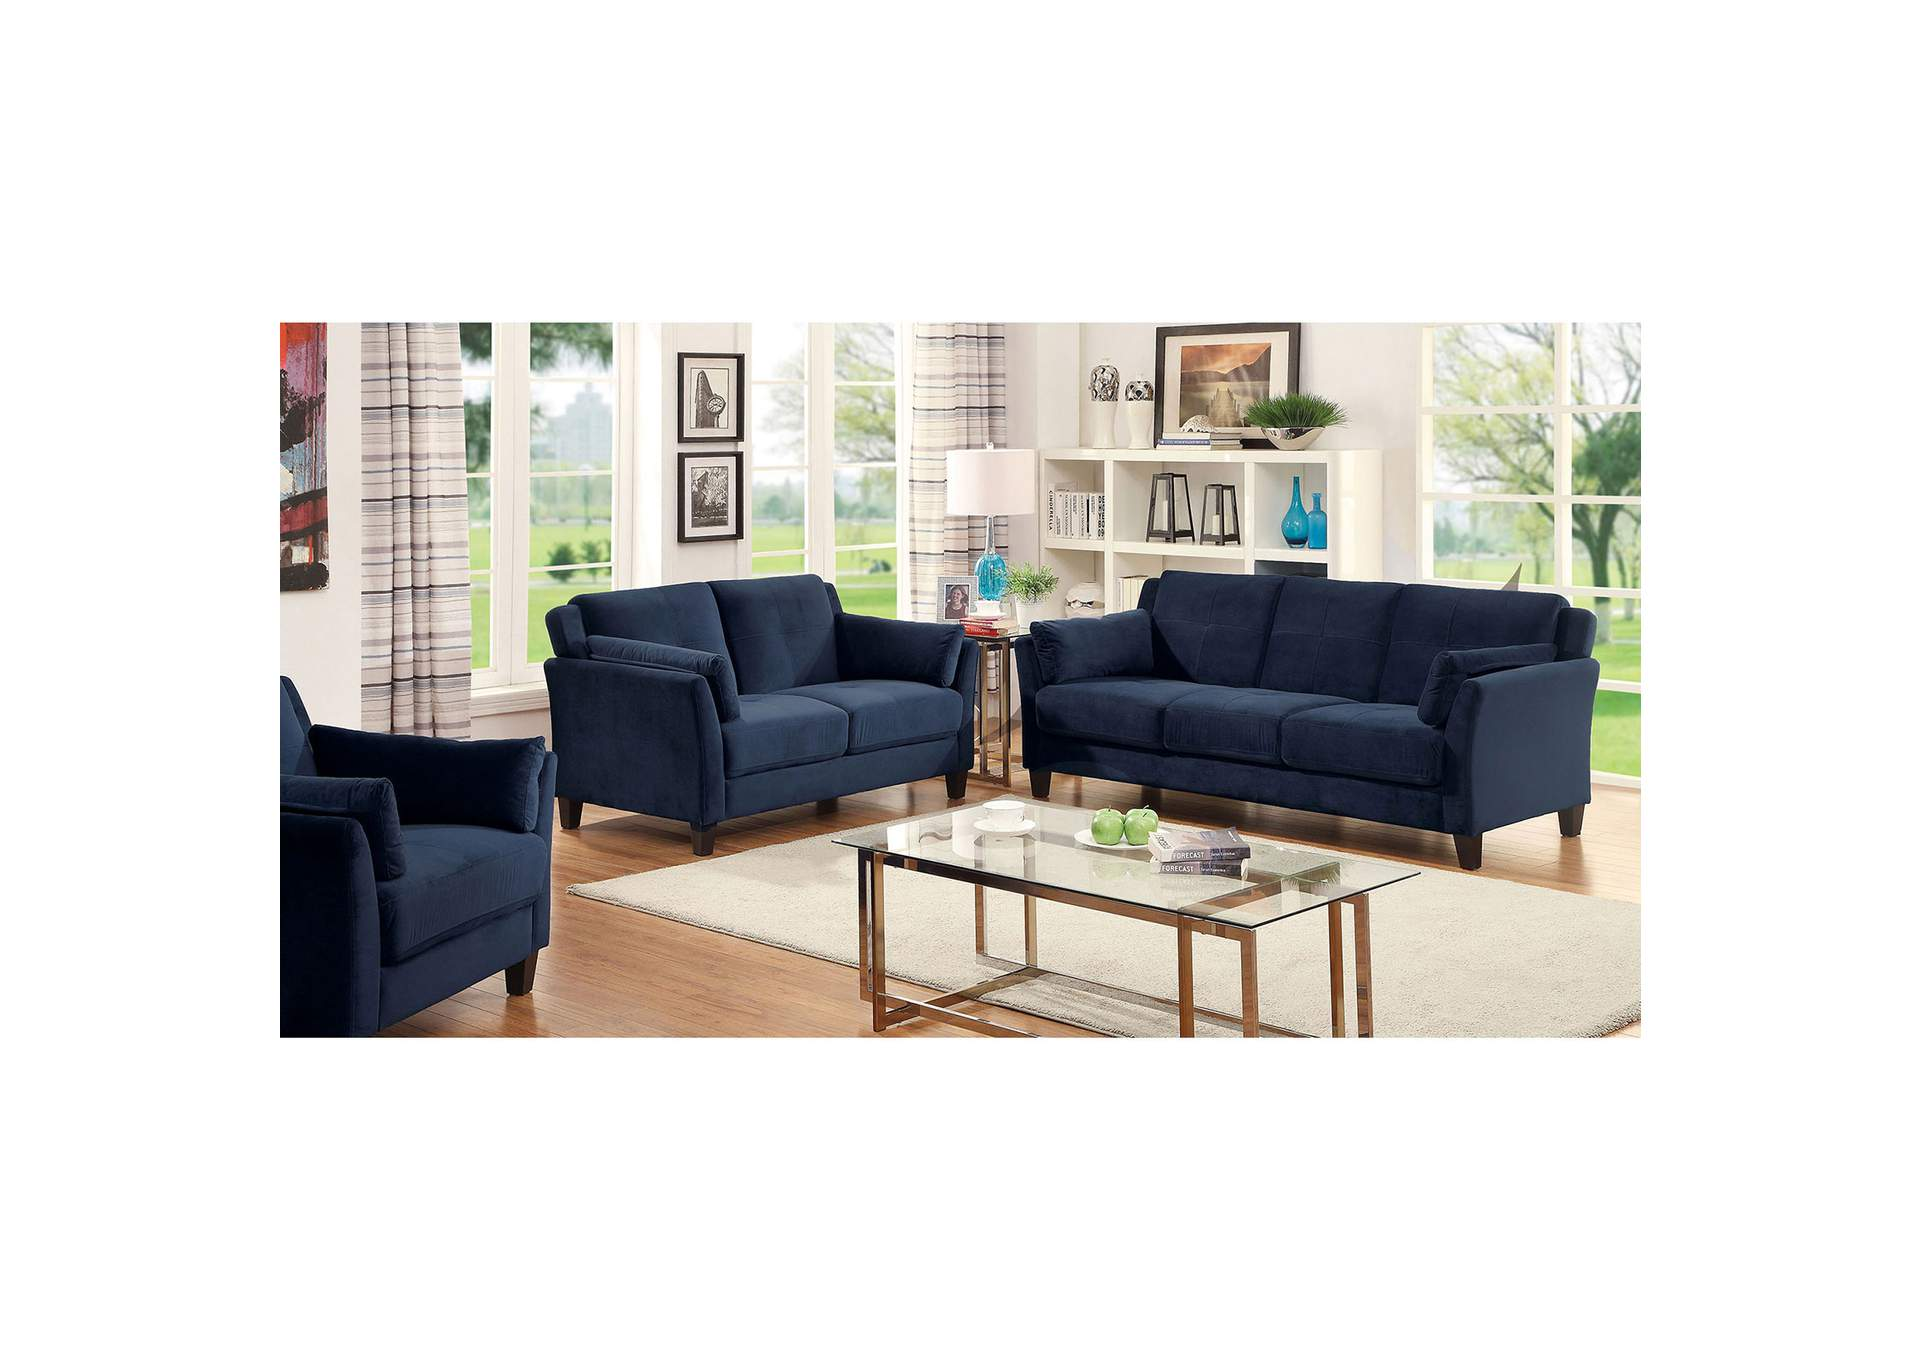 Add Charm Living Room Sets Ysabel Navy Sofa and Loveseat,Furniture of America